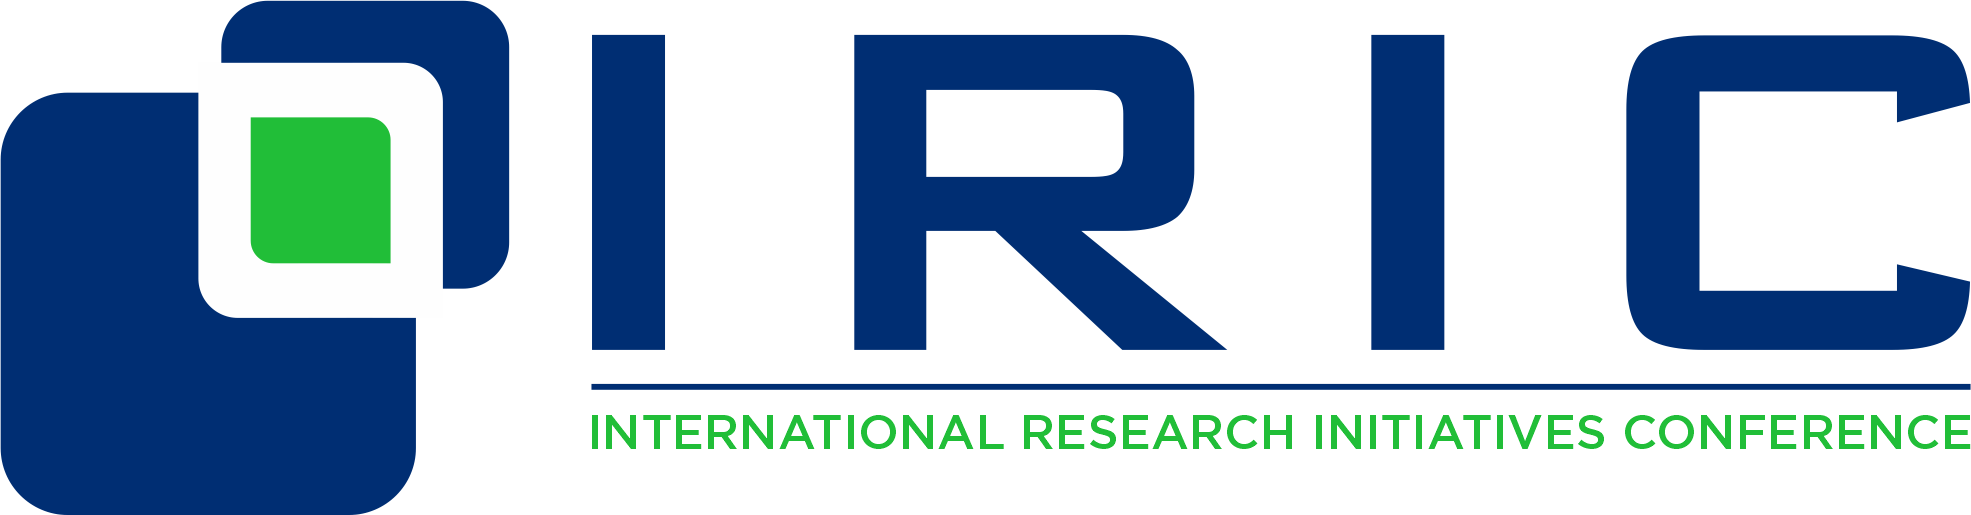 International Research Initiatives Conference (IRIC)